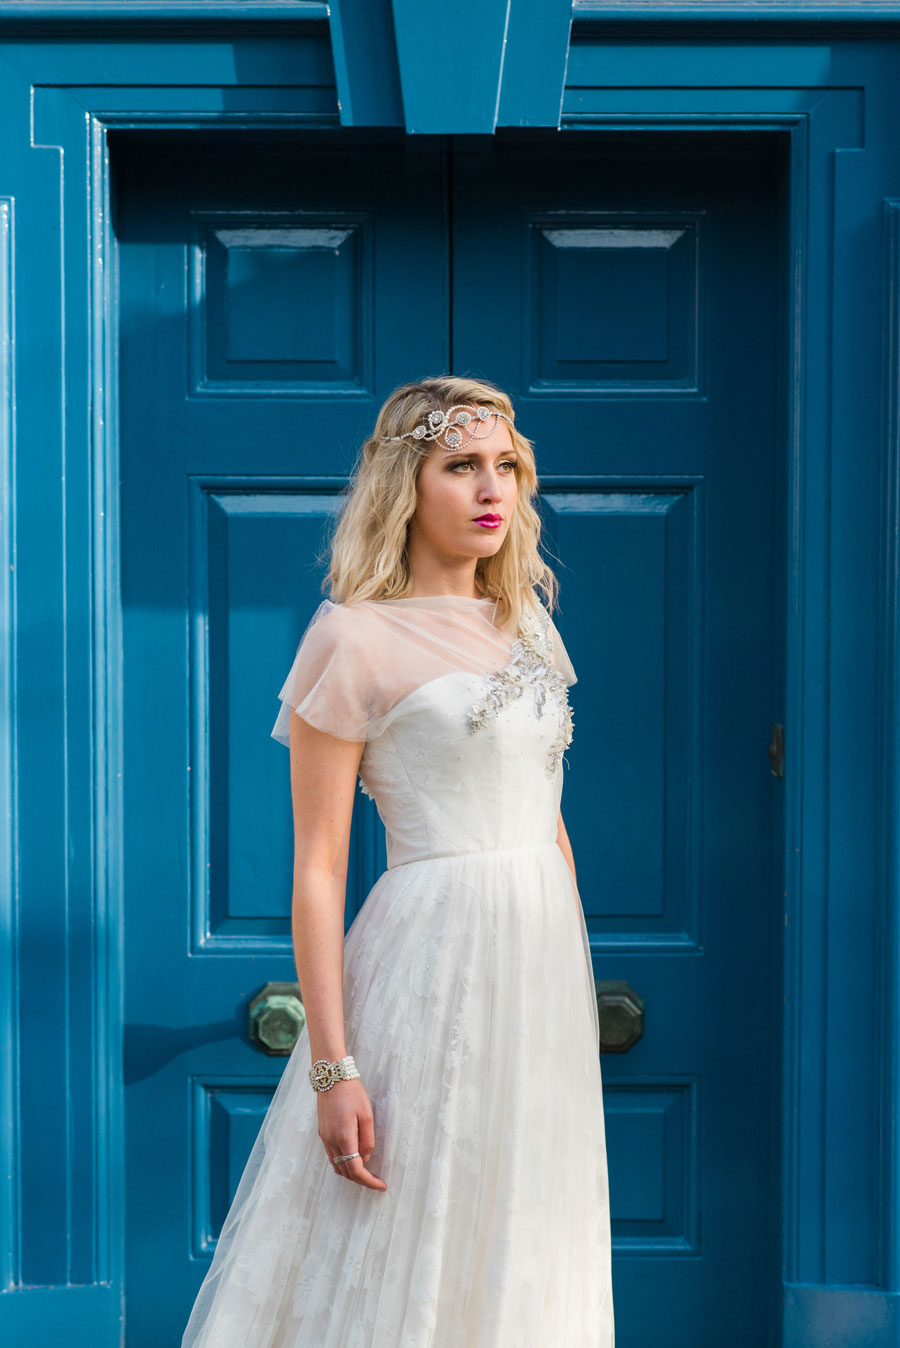 'And Then There Were None' A Contemporary Art Deco Inspired Bridal Shoot